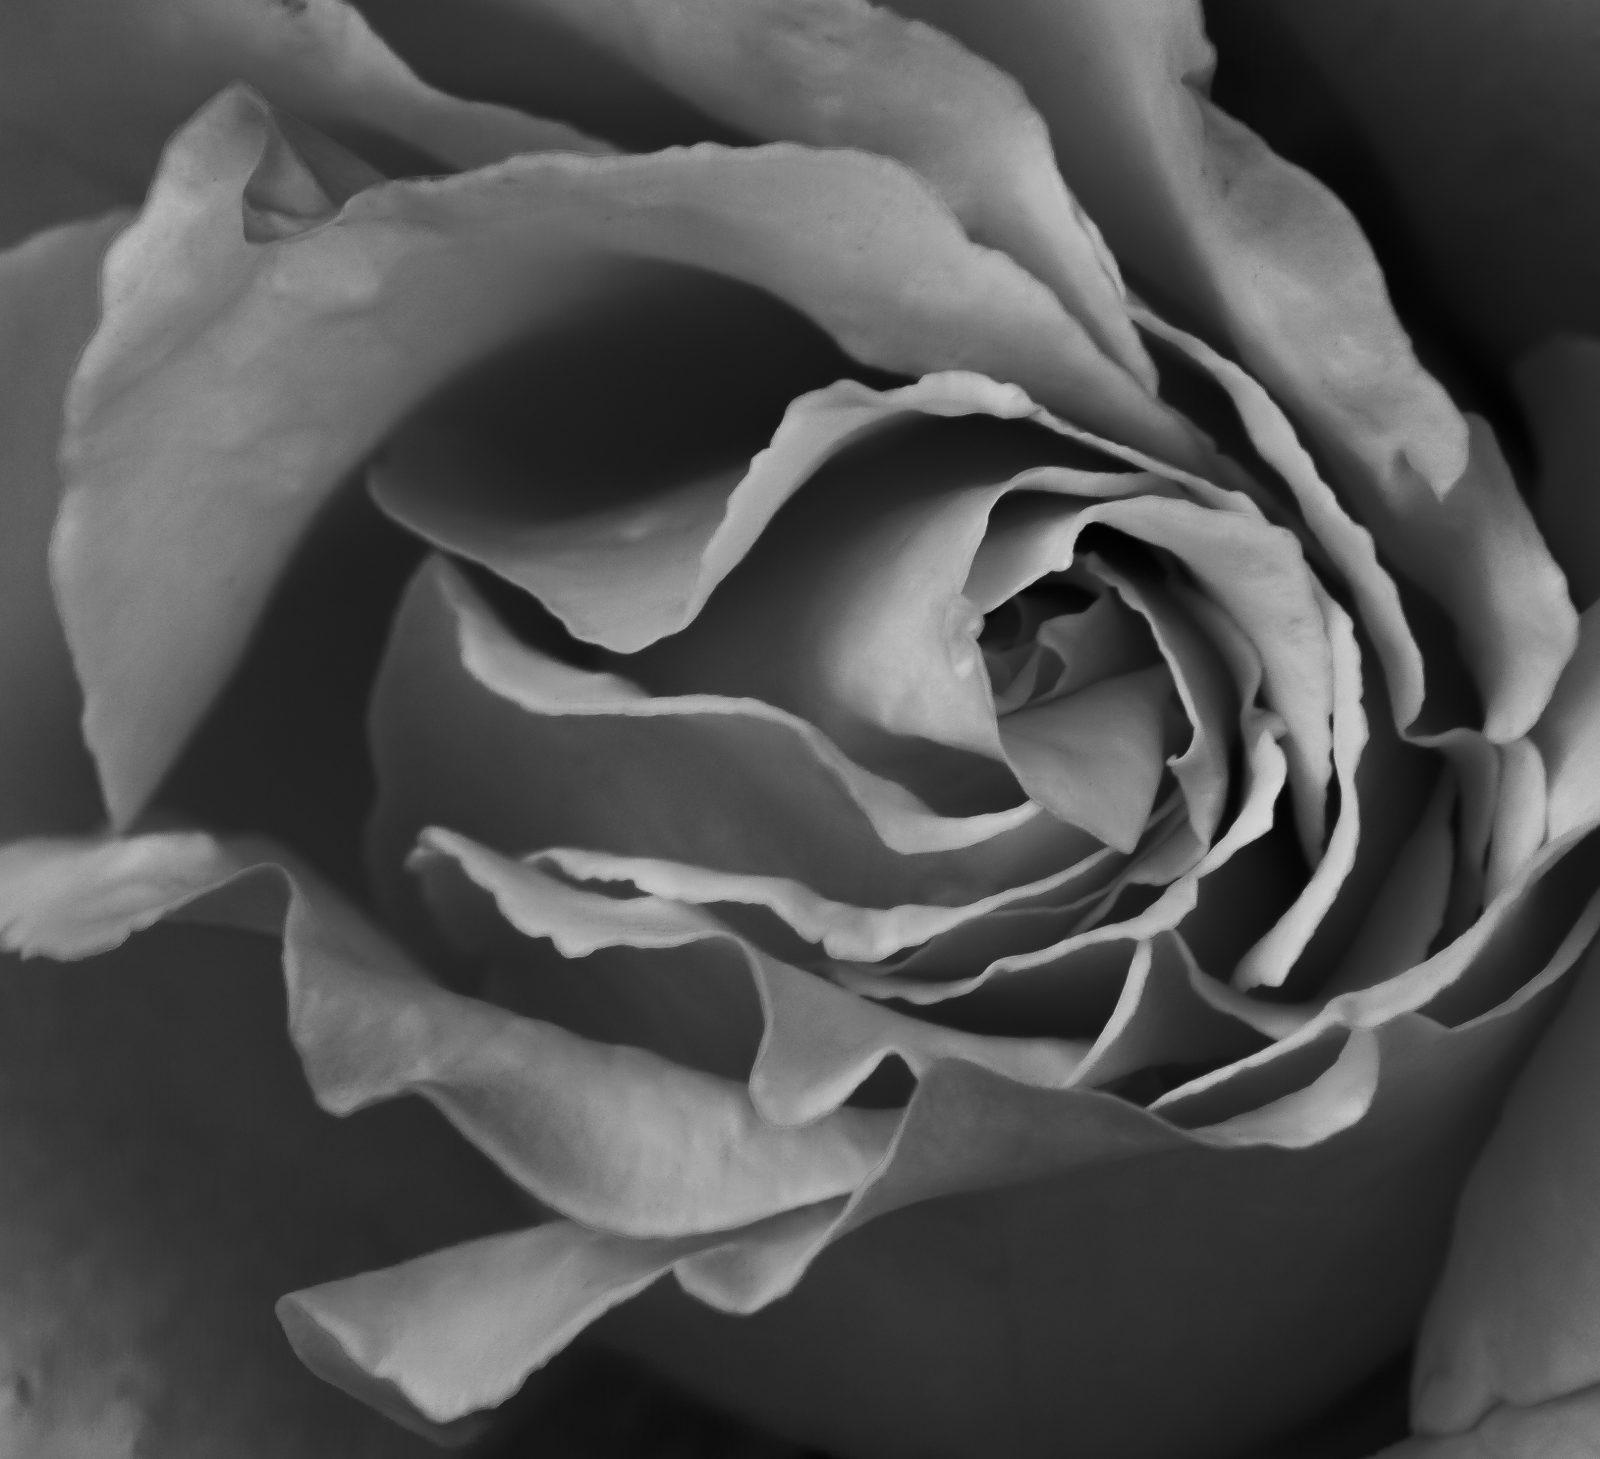 Unfolding Rose in Black and White